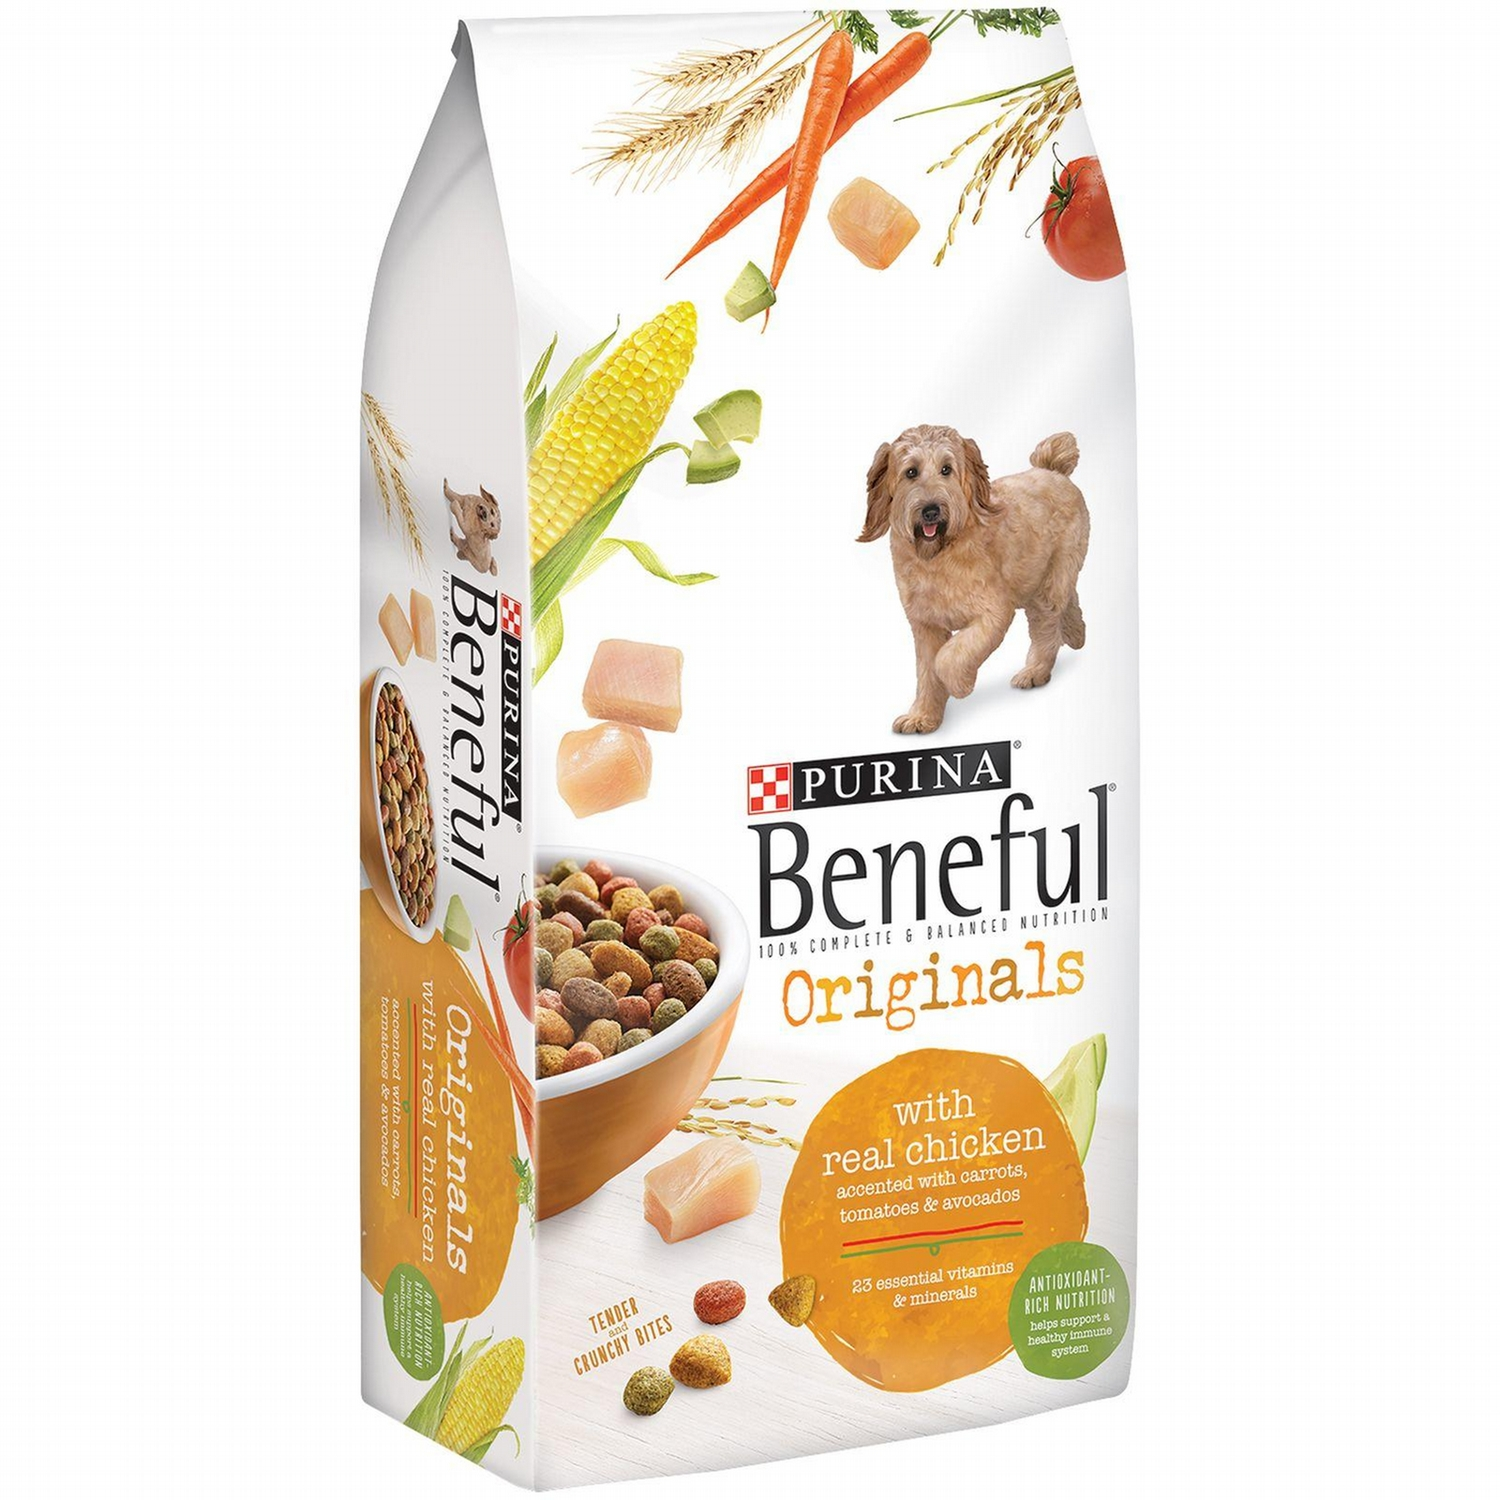 Treat your dog's wild side with protein-rich treats made with real meat or poultry as the #1 ingredient. Purina ONE True Instinct Bites Dog Treats Small, protein-rich bites that will drive your dog wild from treat time to training time and any time in-between.